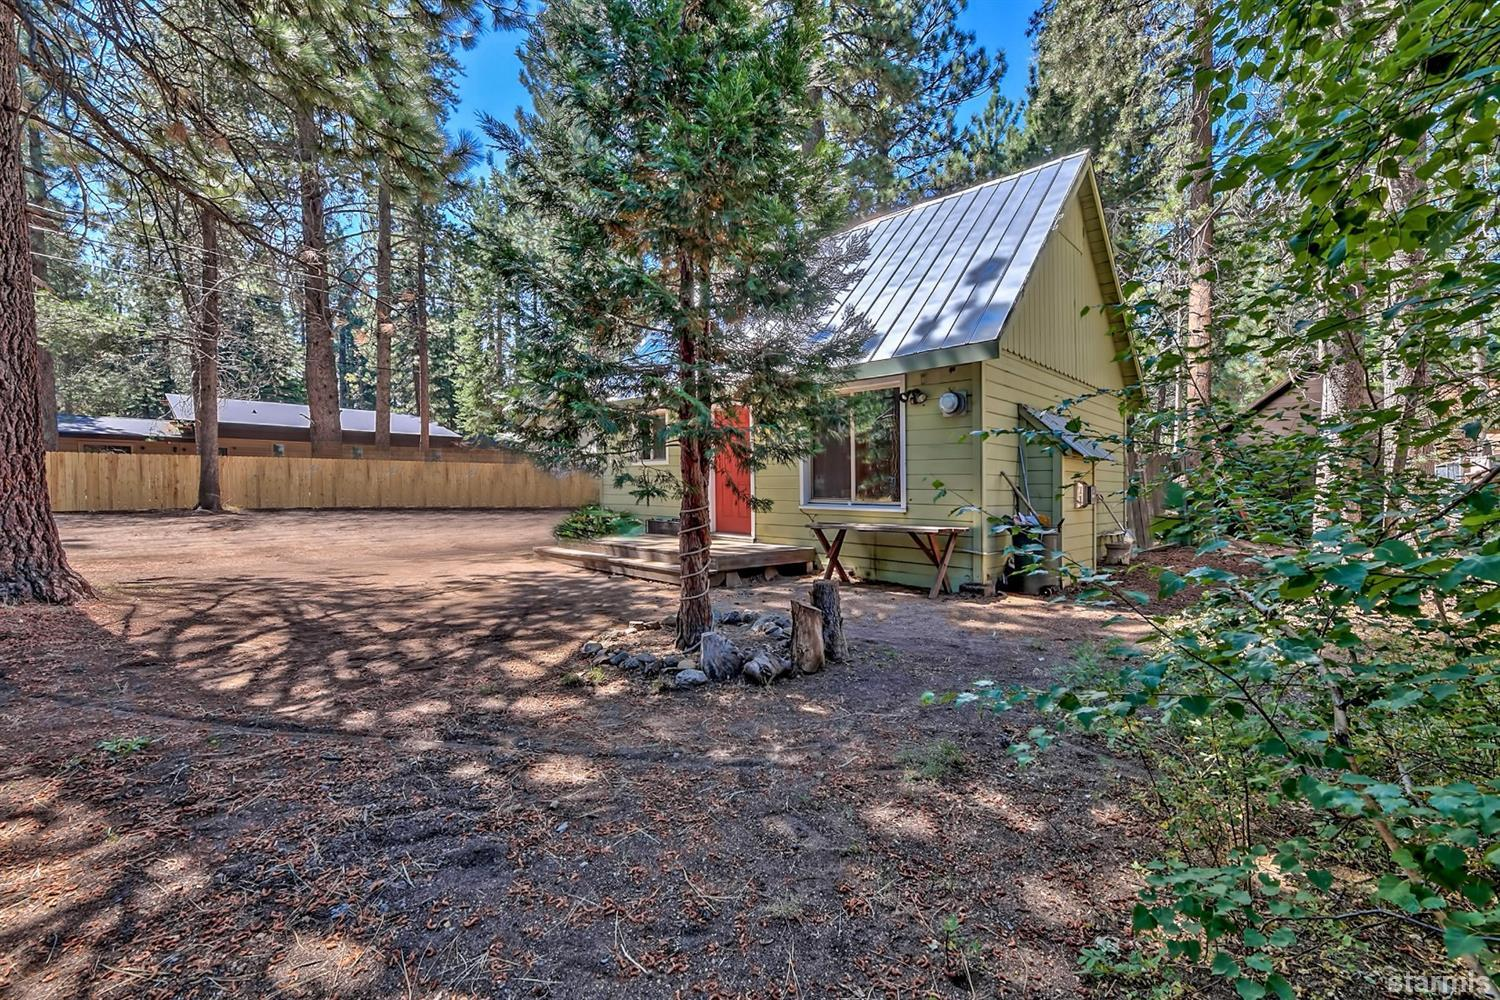 Tata Lane, SOUTH LAKE TAHOE, CA 96150